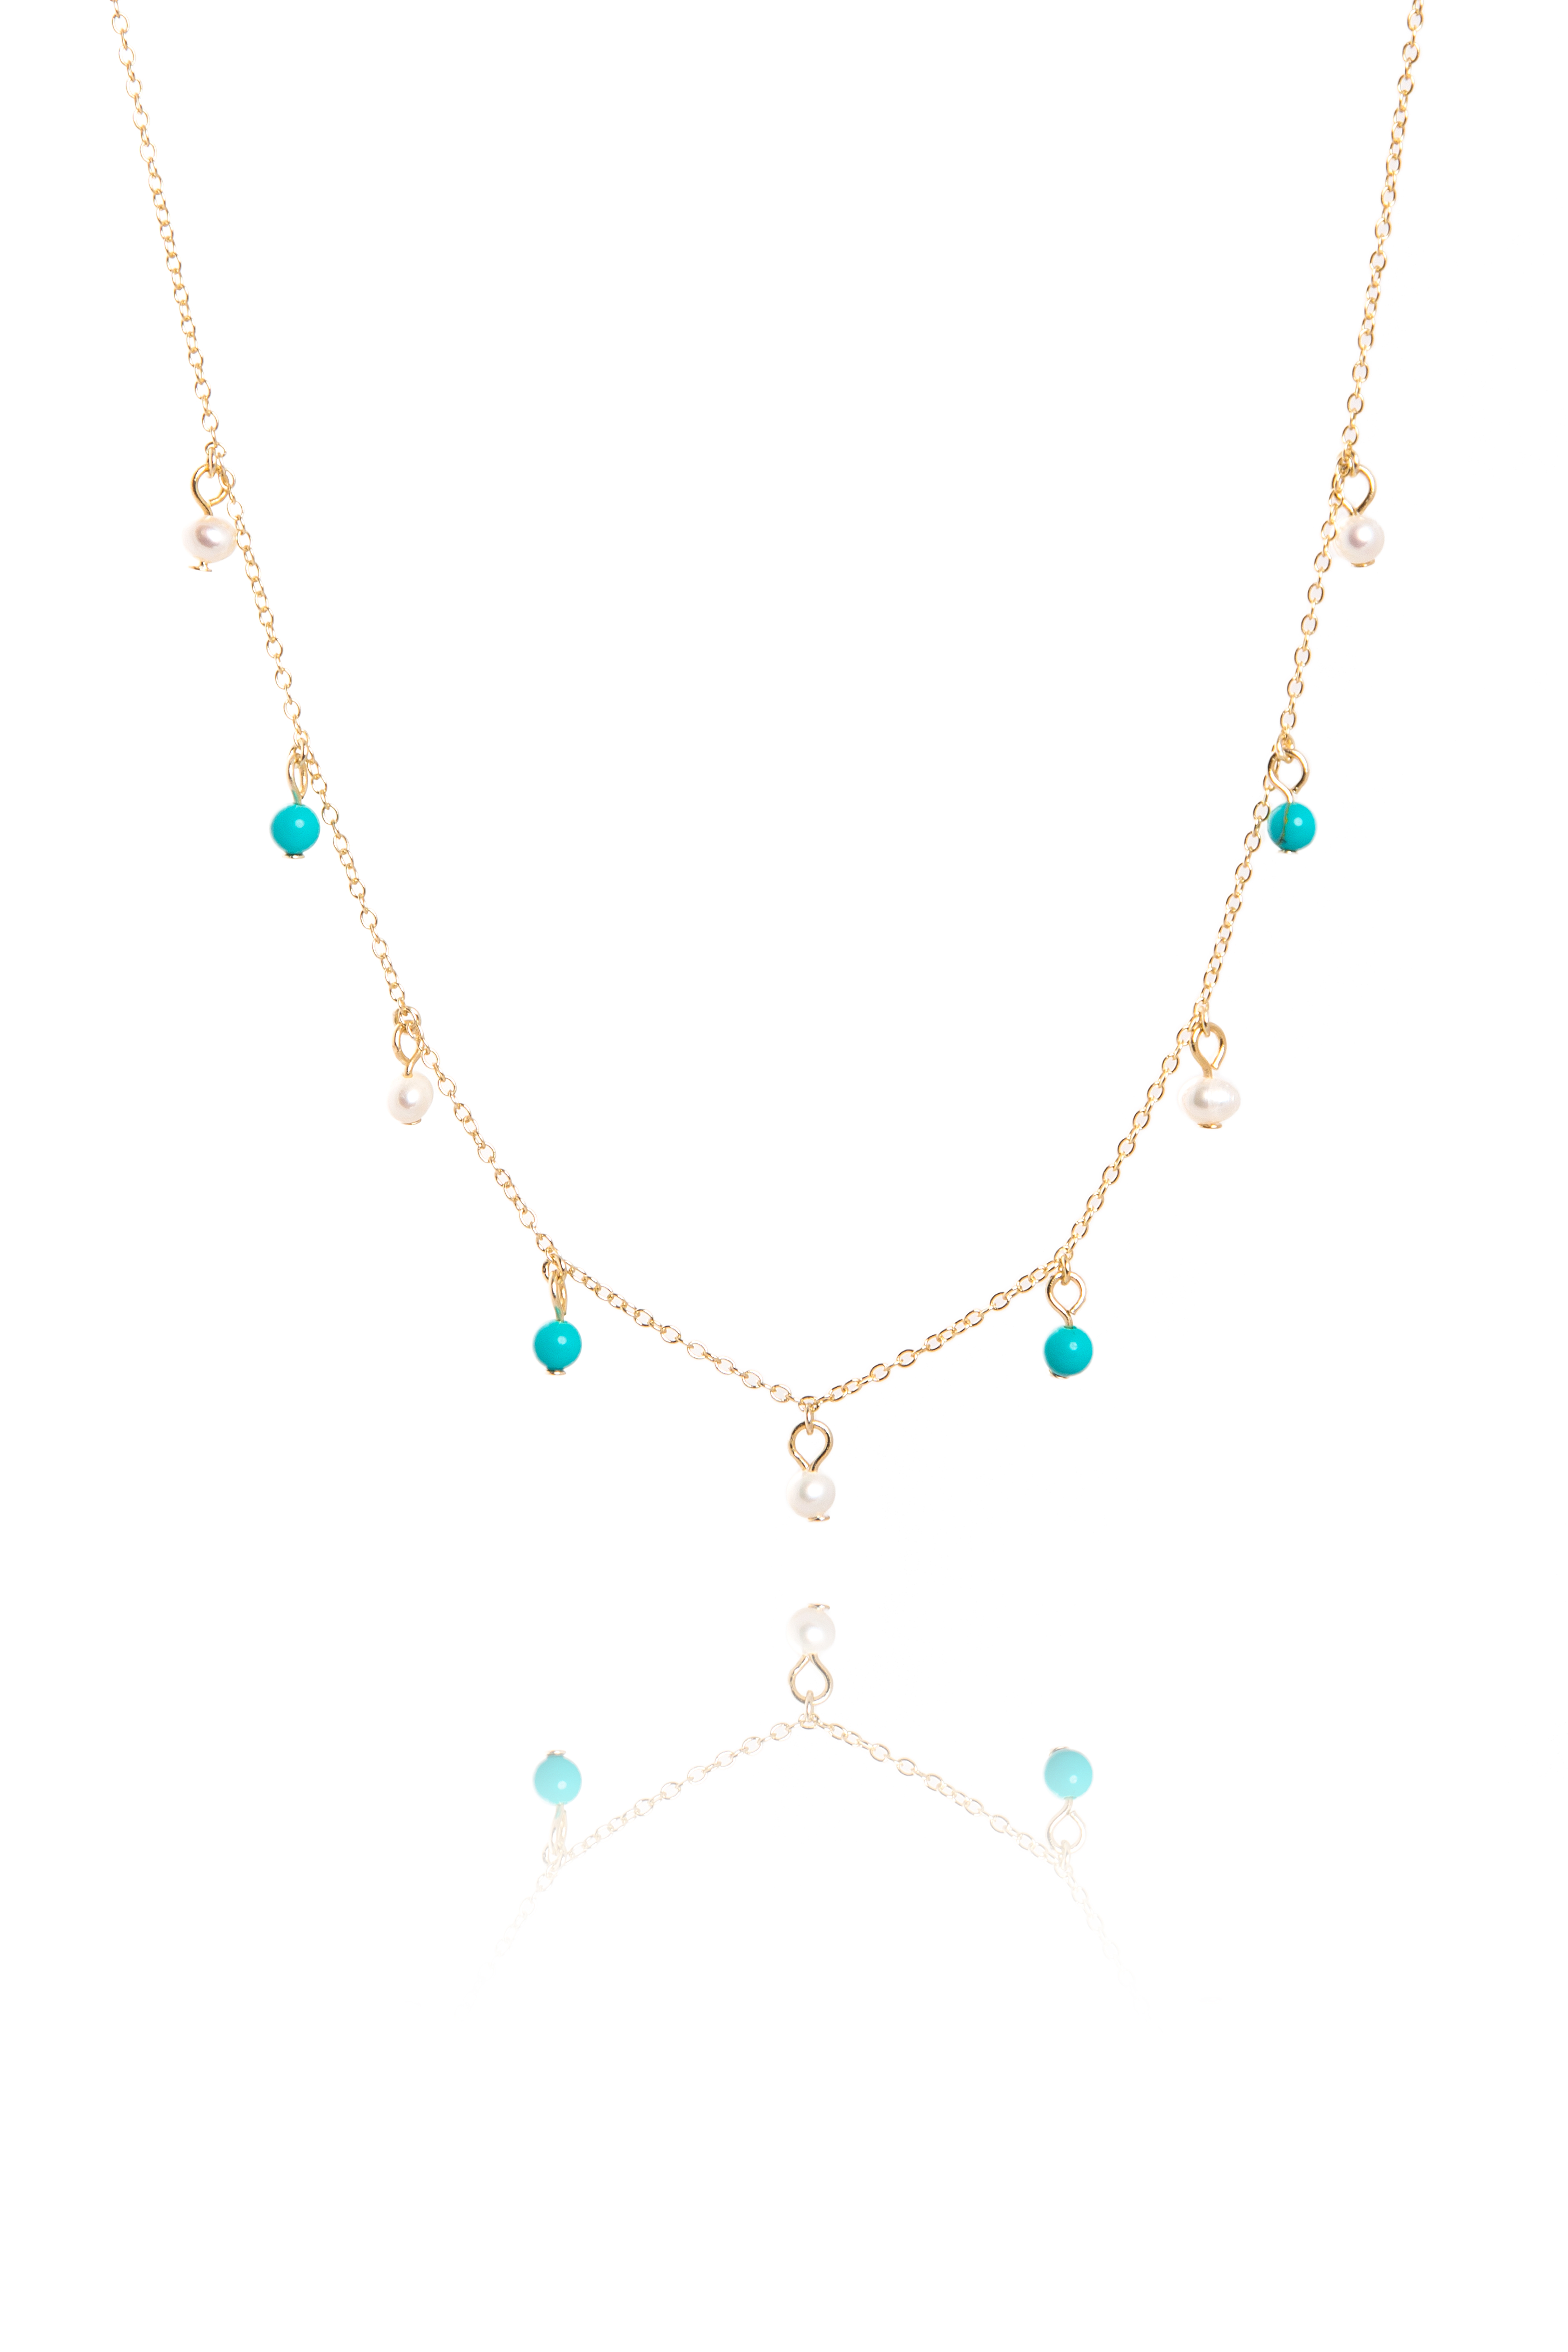 Finest Turquoise & Pearl Drop Necklace on Gold - The Makery Collection OS53